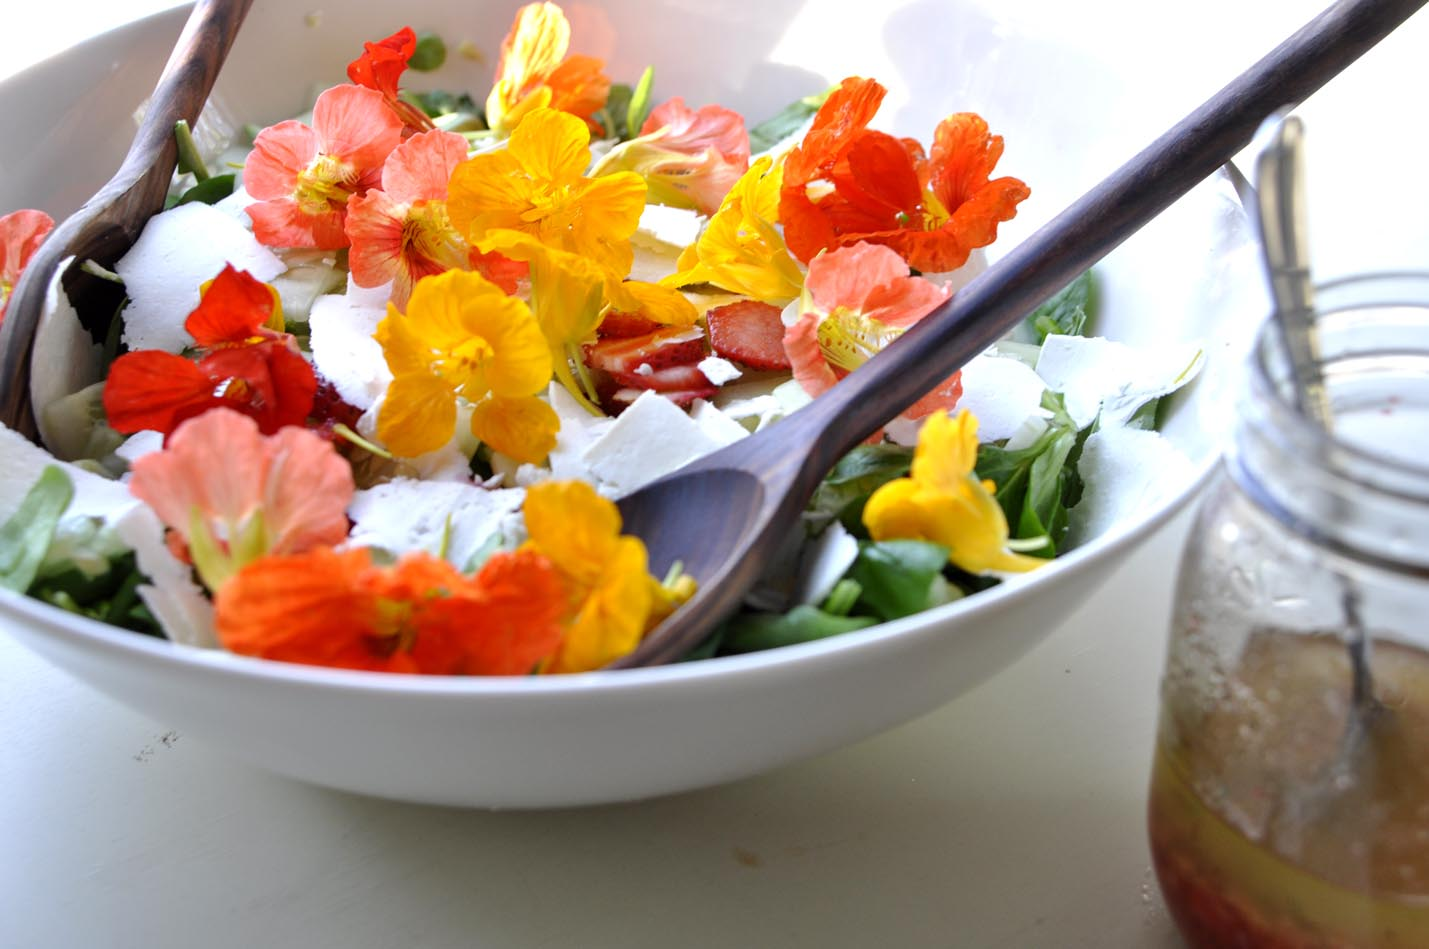 grow your own food easy edible flowers guest post